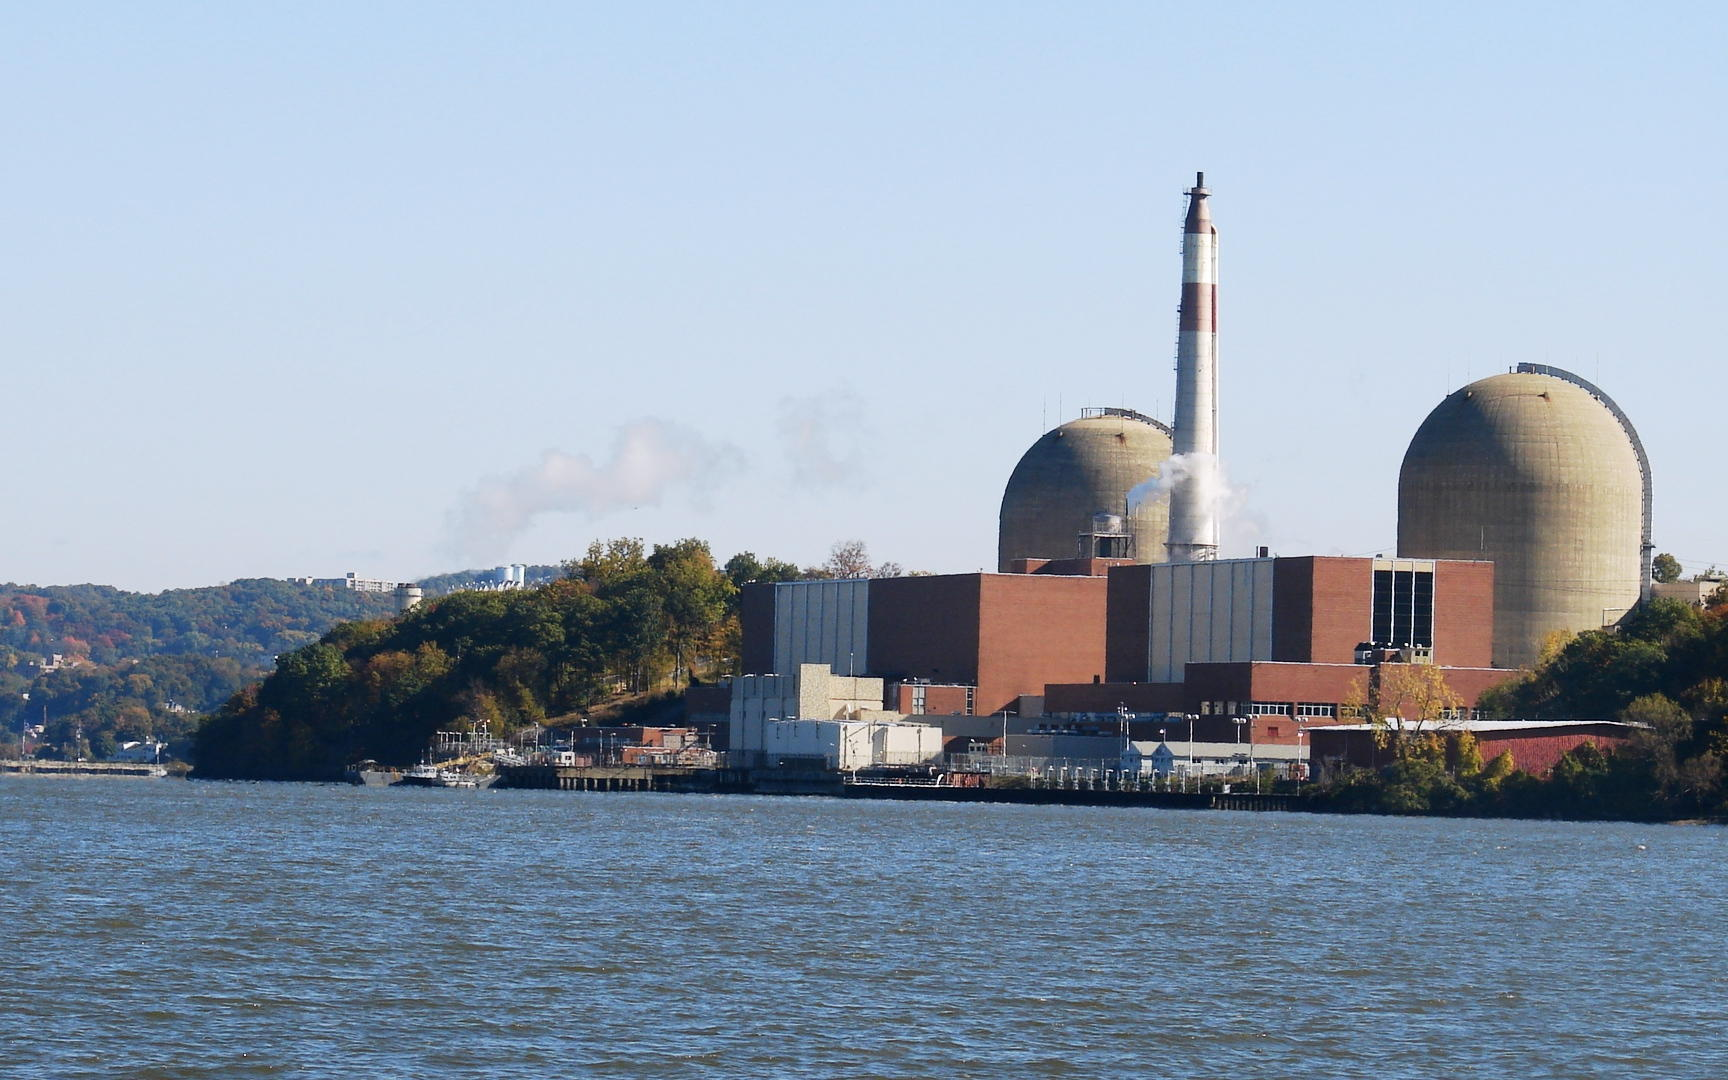 NY Governor Cuomo thinks Indian Point is too dangerous to operate. He's right. But why are upstate reactors any different?